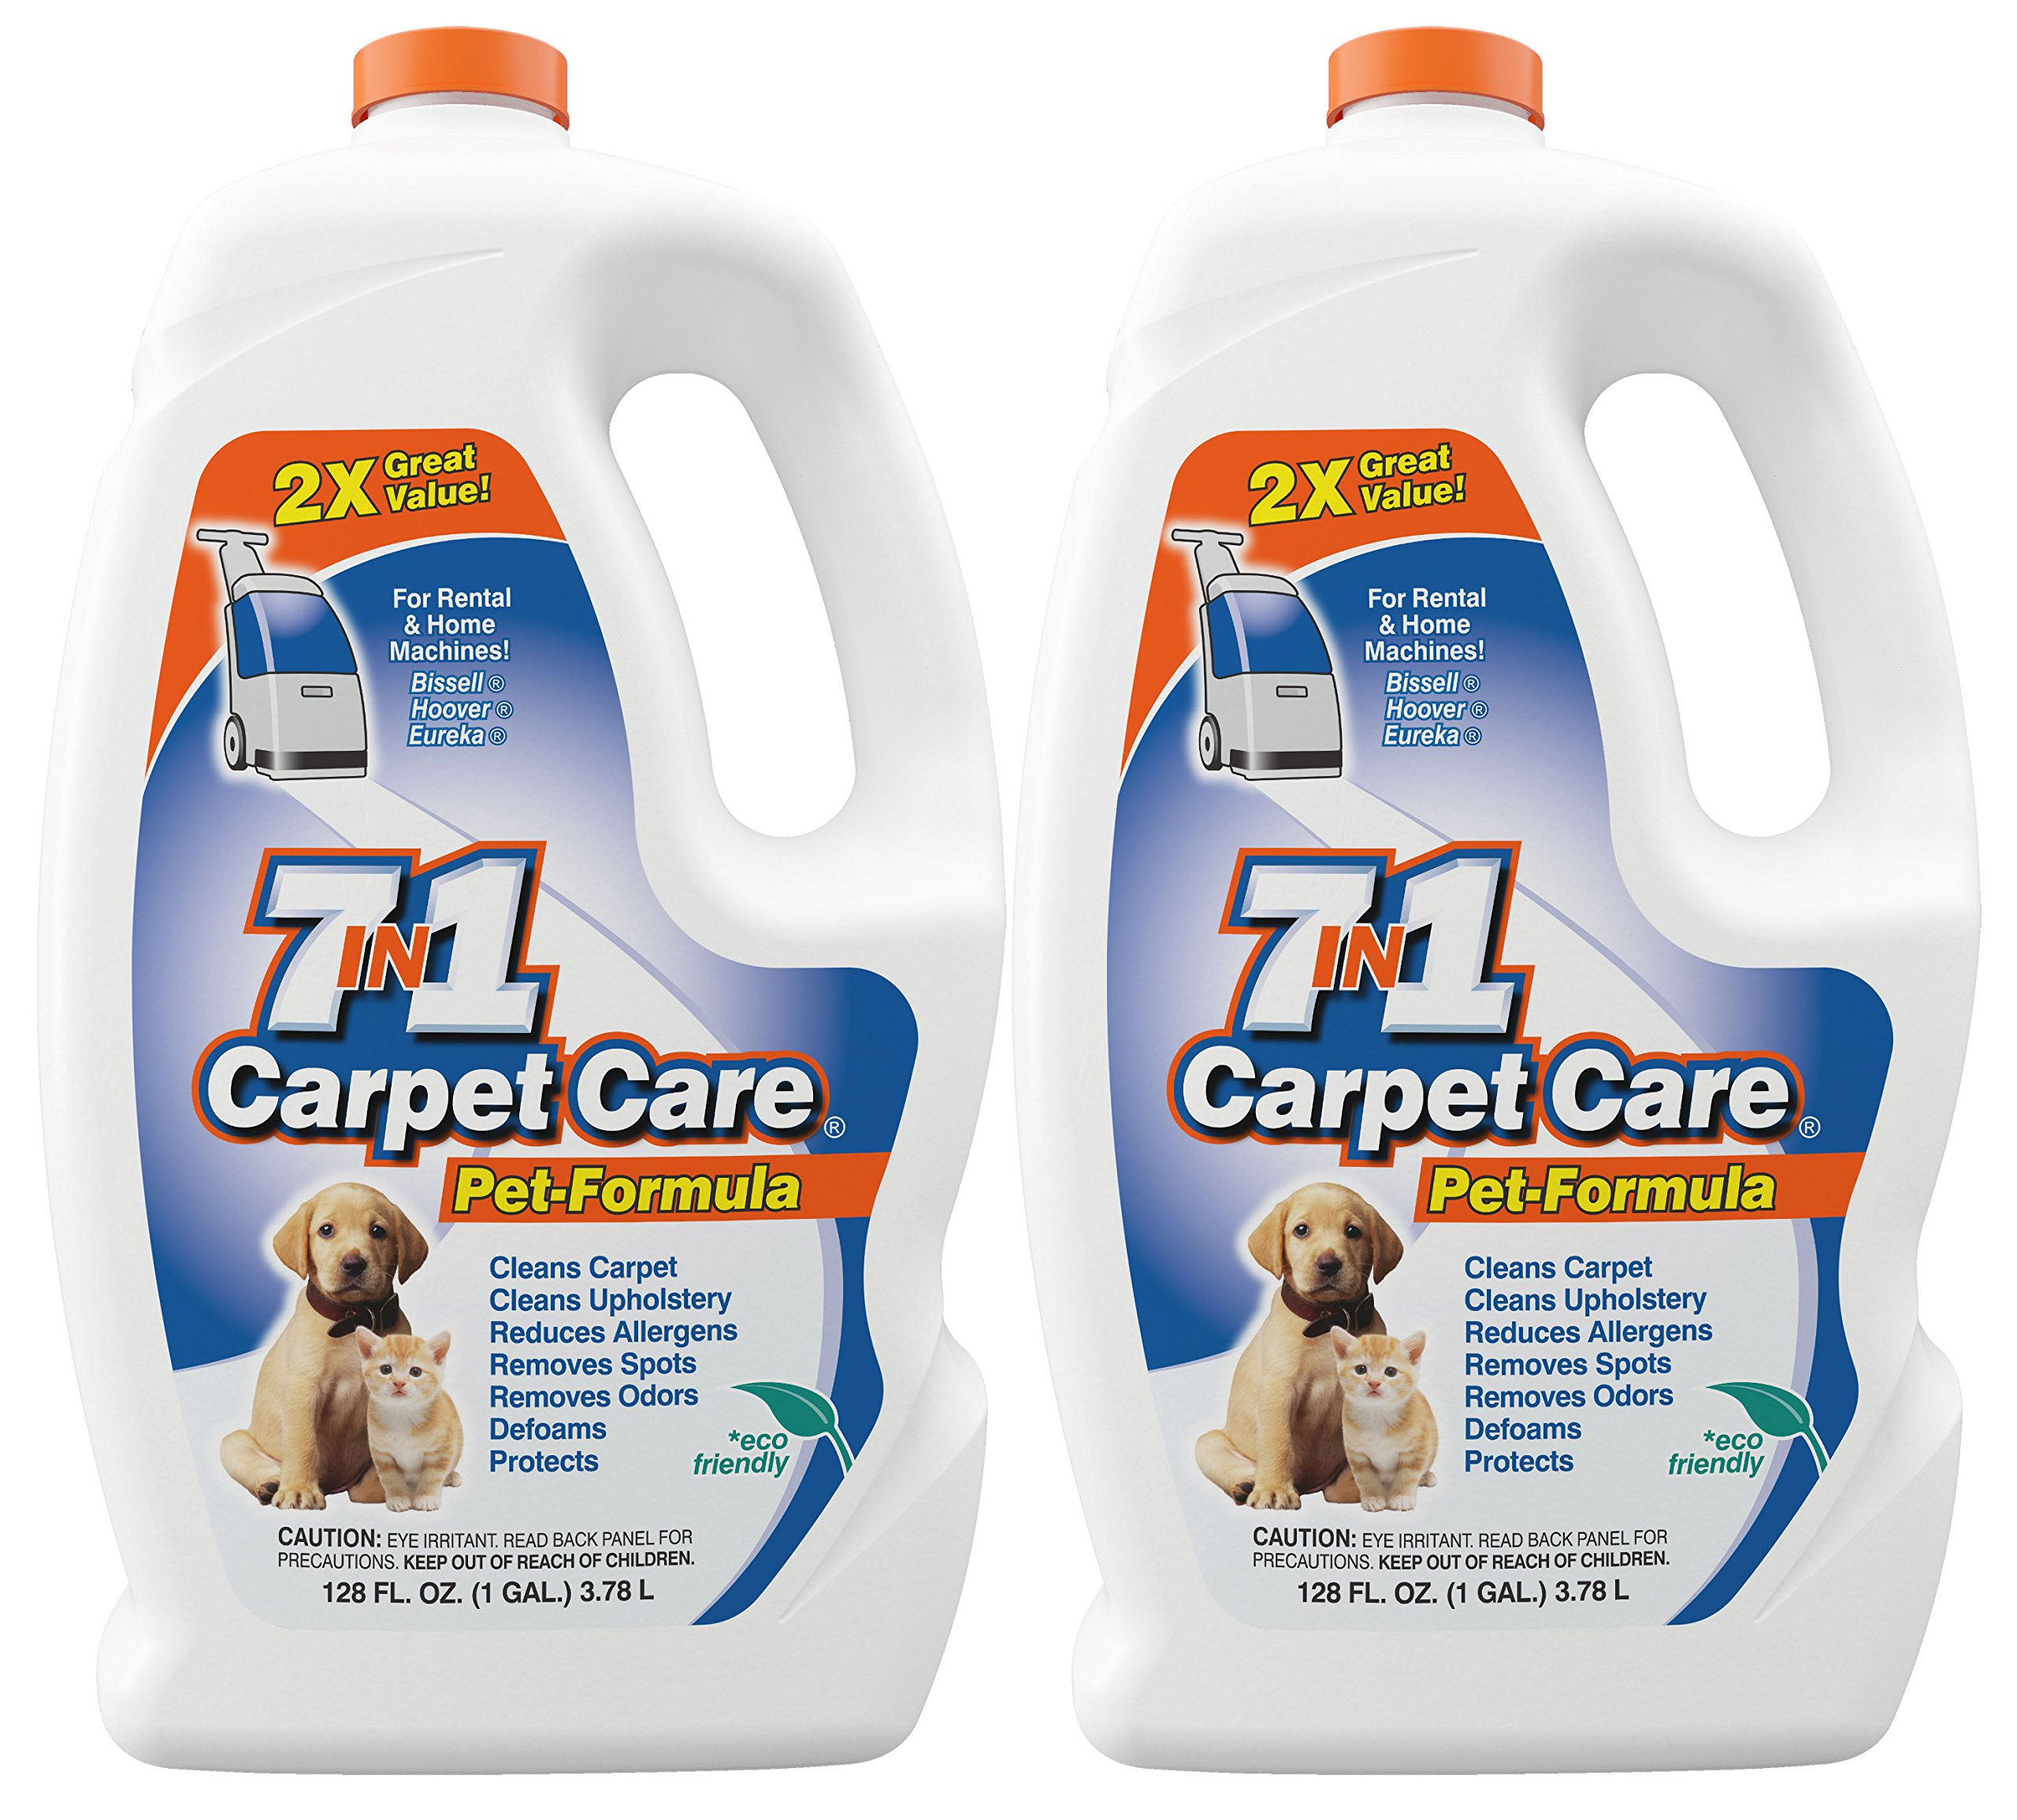 7in1 Carpet Care Pet Formula Carpet Cleaning Solution-Works in all Carpet Cleaning Machines-One case of two one gallon bottles